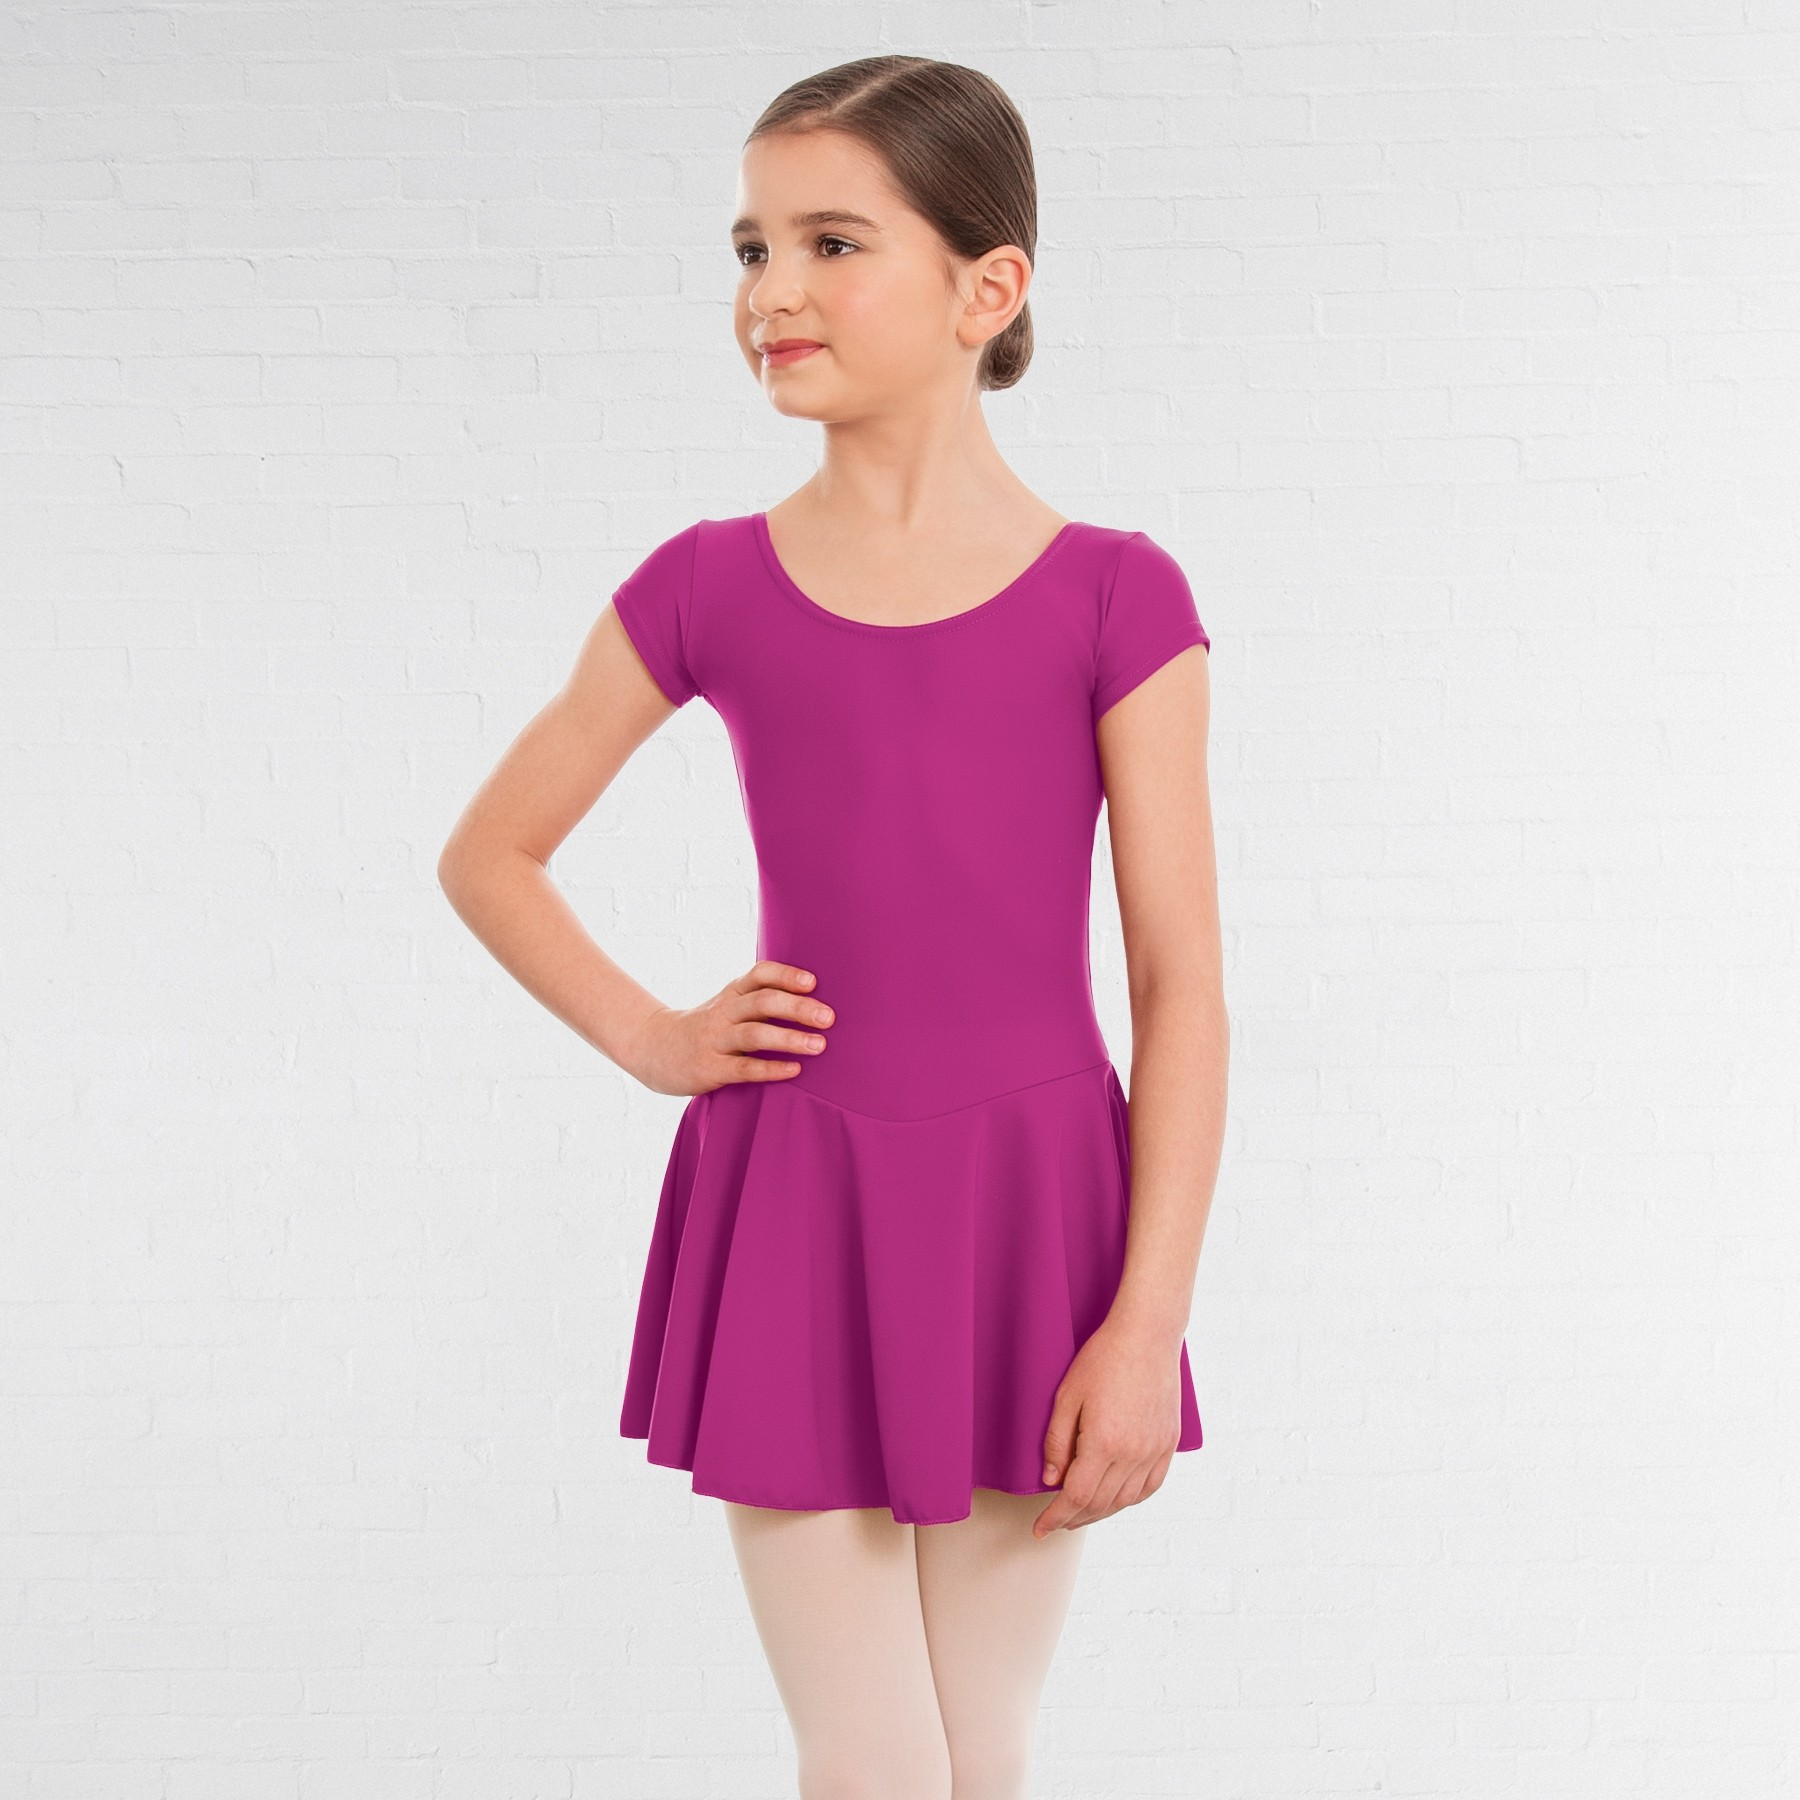 1st Position Maddy Skirted Cap Sleeve Leotard (Matt Nylon) (Magenta)